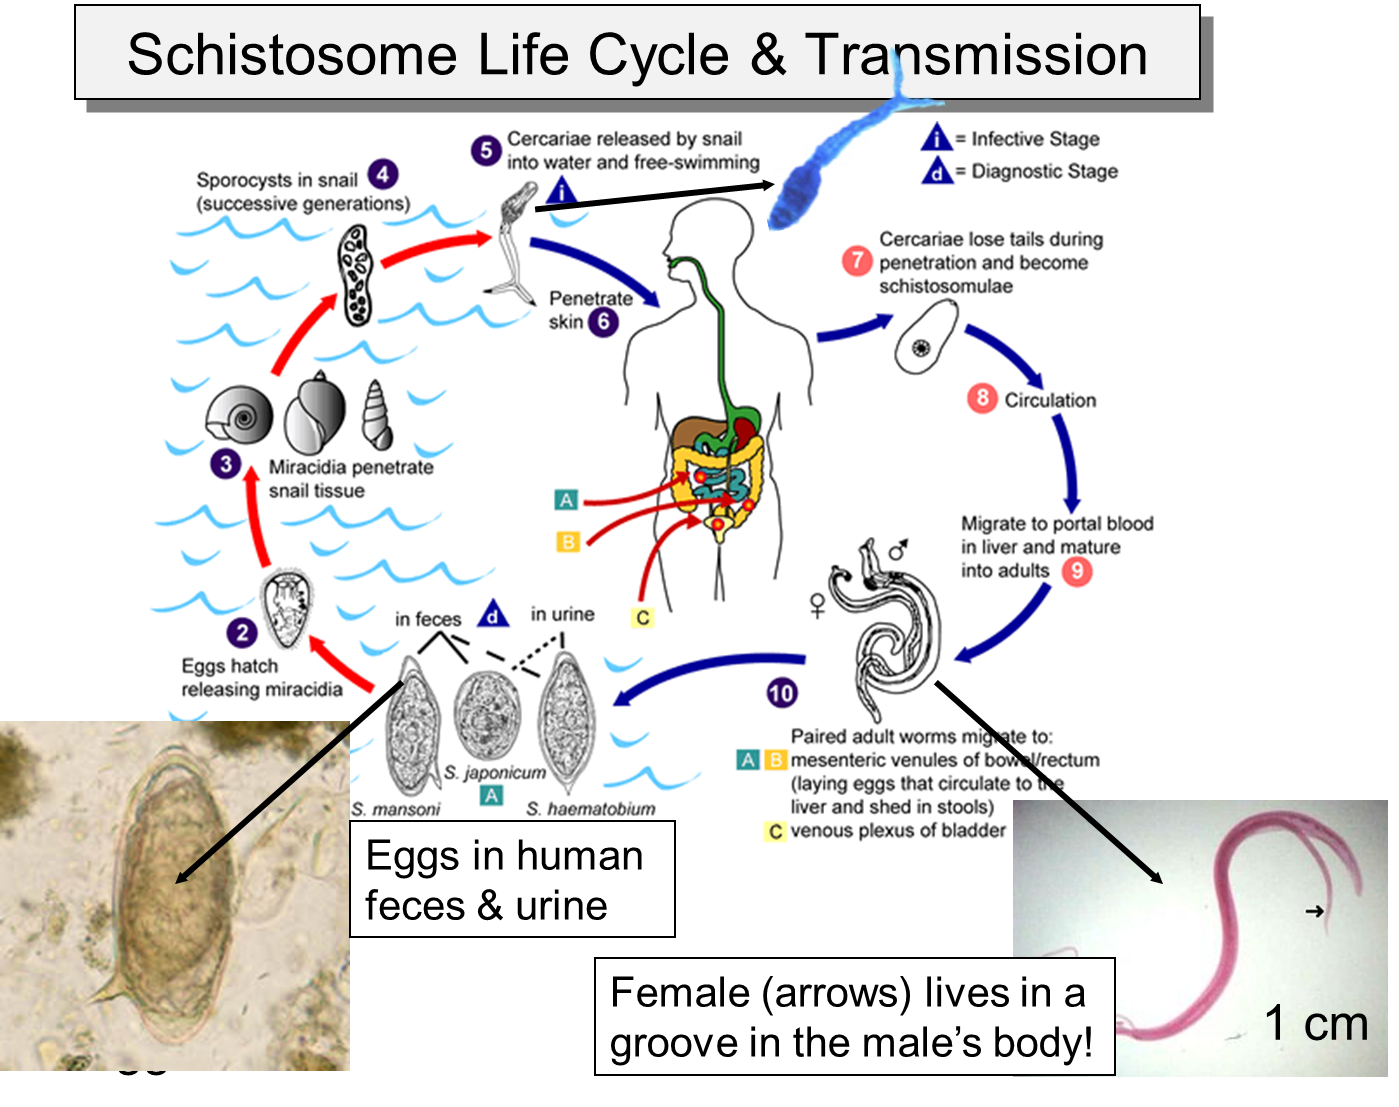 schistosome life cycle png